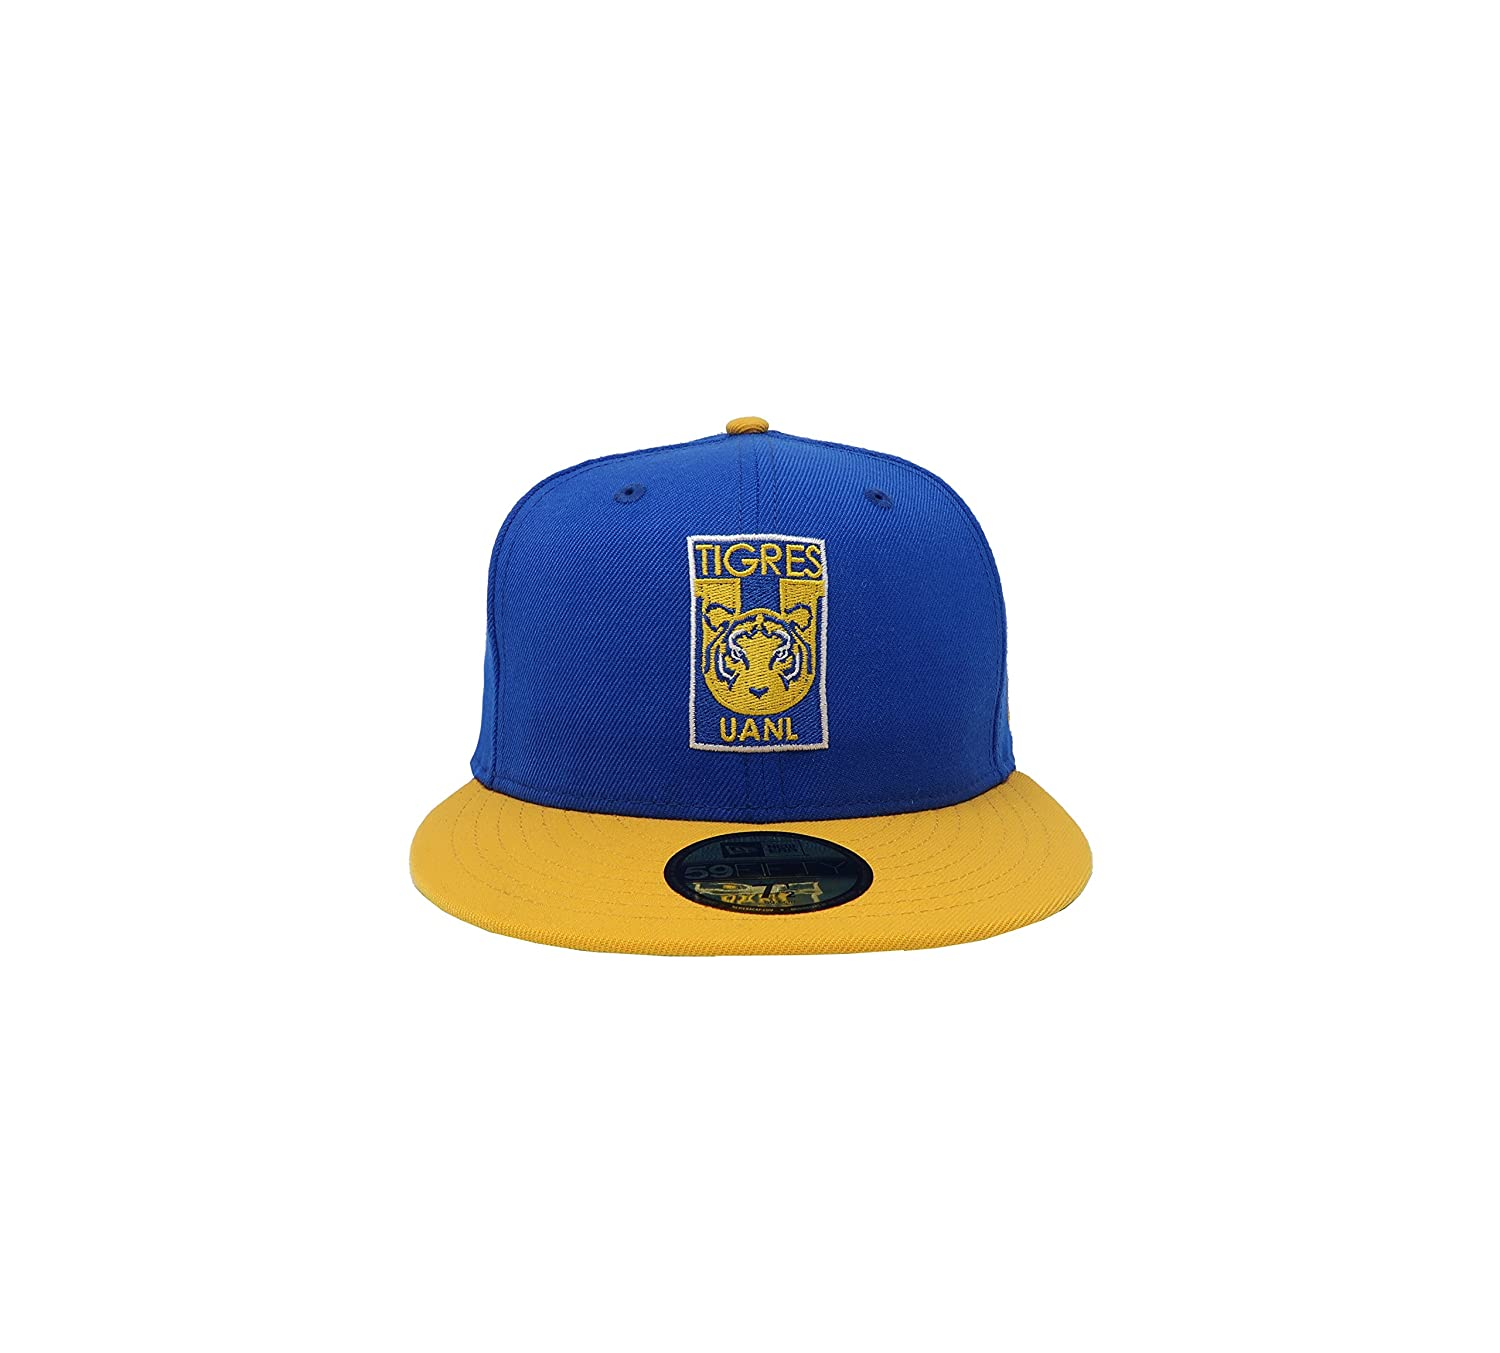 New Era 59Fifty Hat Tigres De Monterrey Soccer Club MX League Blue/Gold Fitted Cap at Amazon Mens Clothing store: